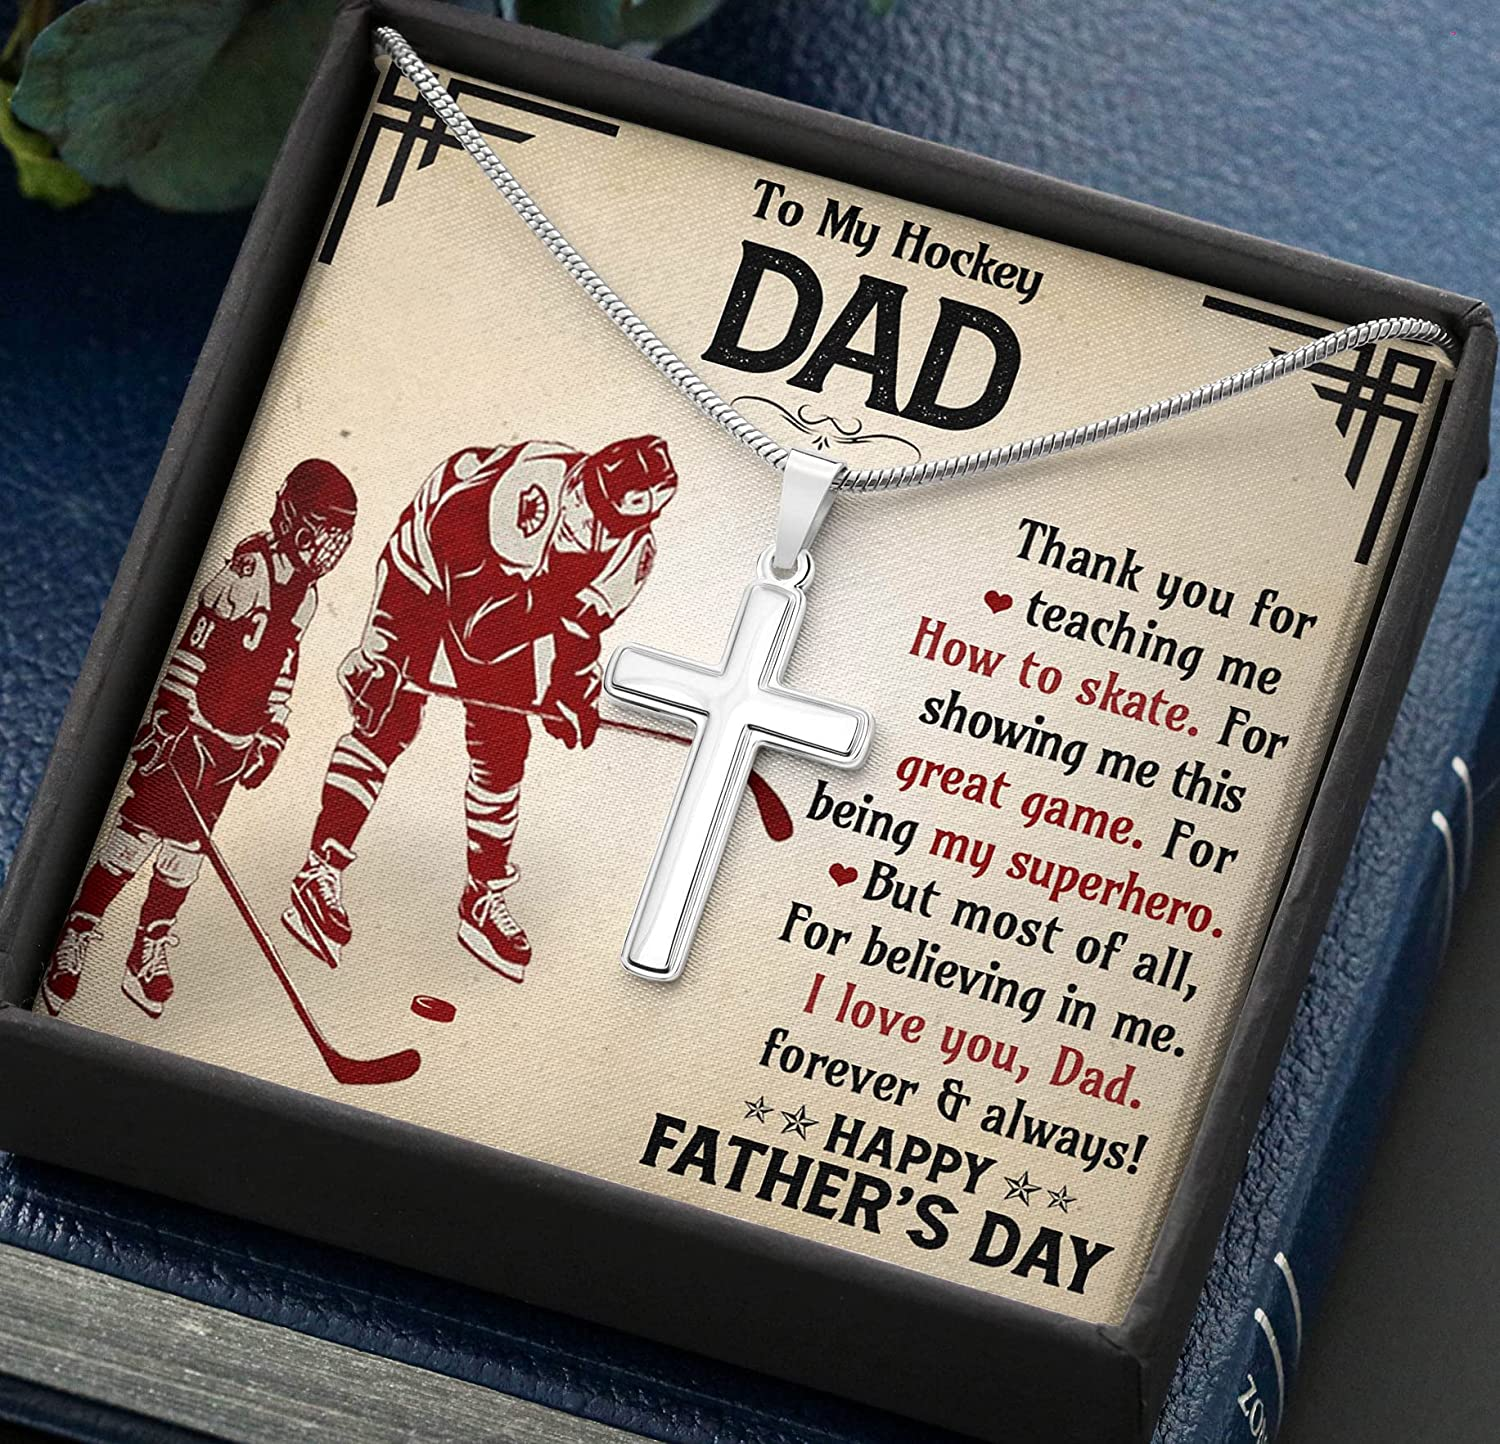 To My OFFicial mail order Hockey Dad Necklace Soldering Gift Me Showing Great This Ga For